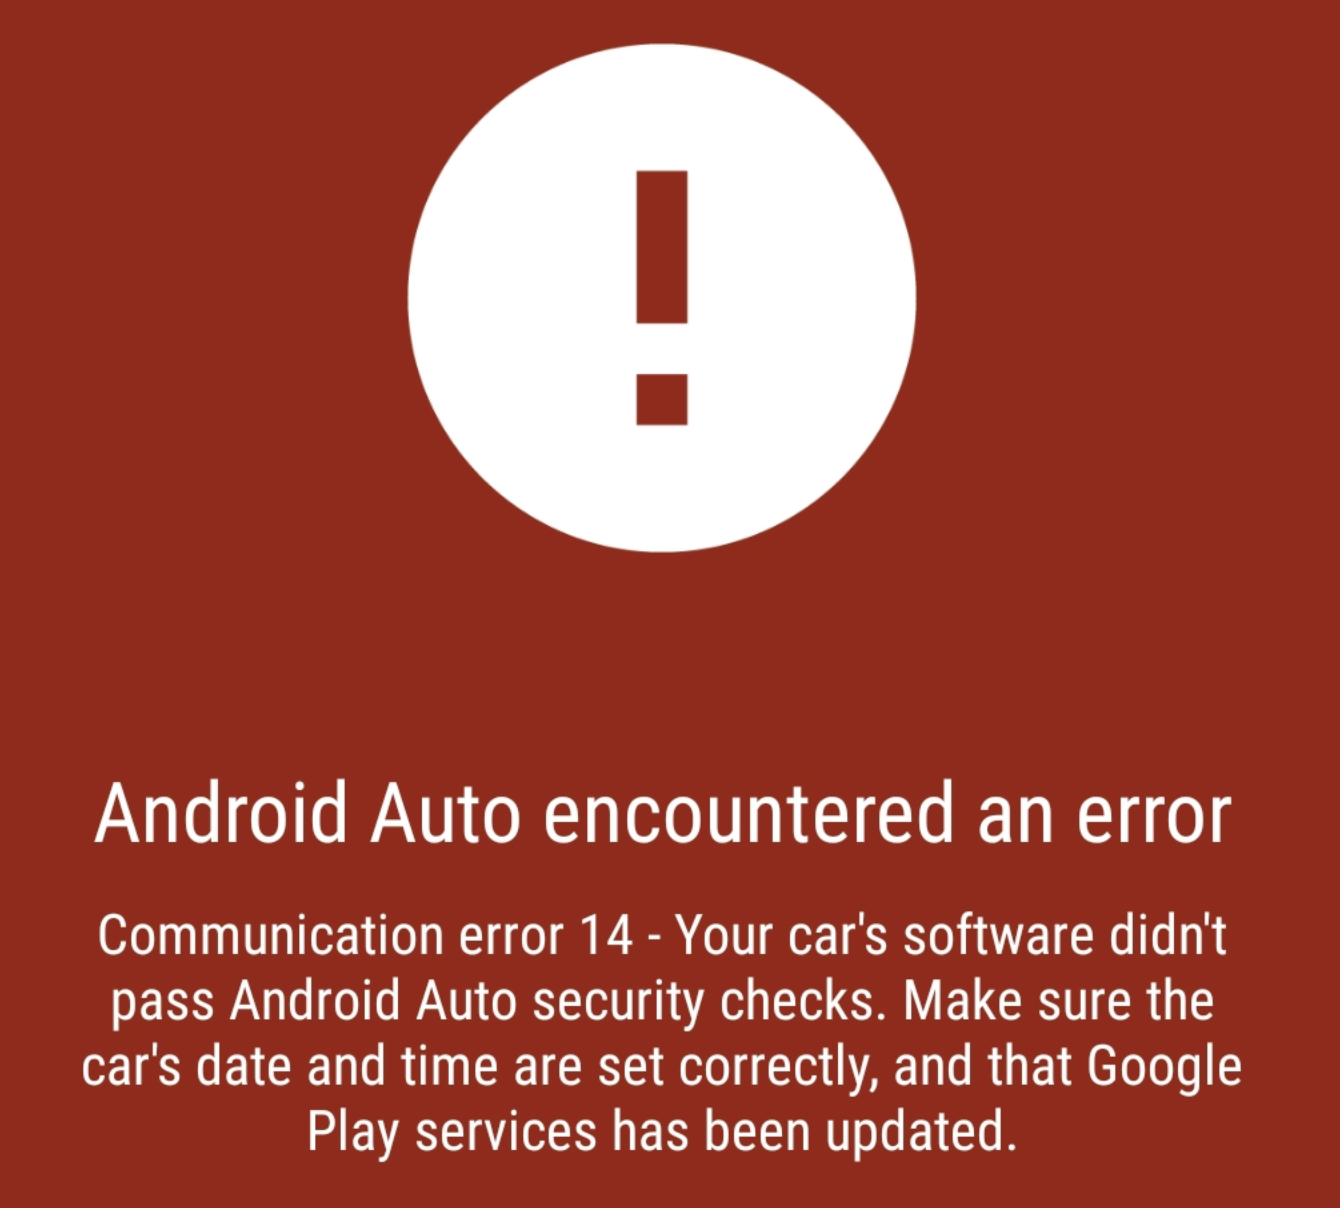 Communication error 14 - Your can's software didn't pass Android Auto security checks. Make sure the car's date and time are set correctly, and that Google Play services has been updated.